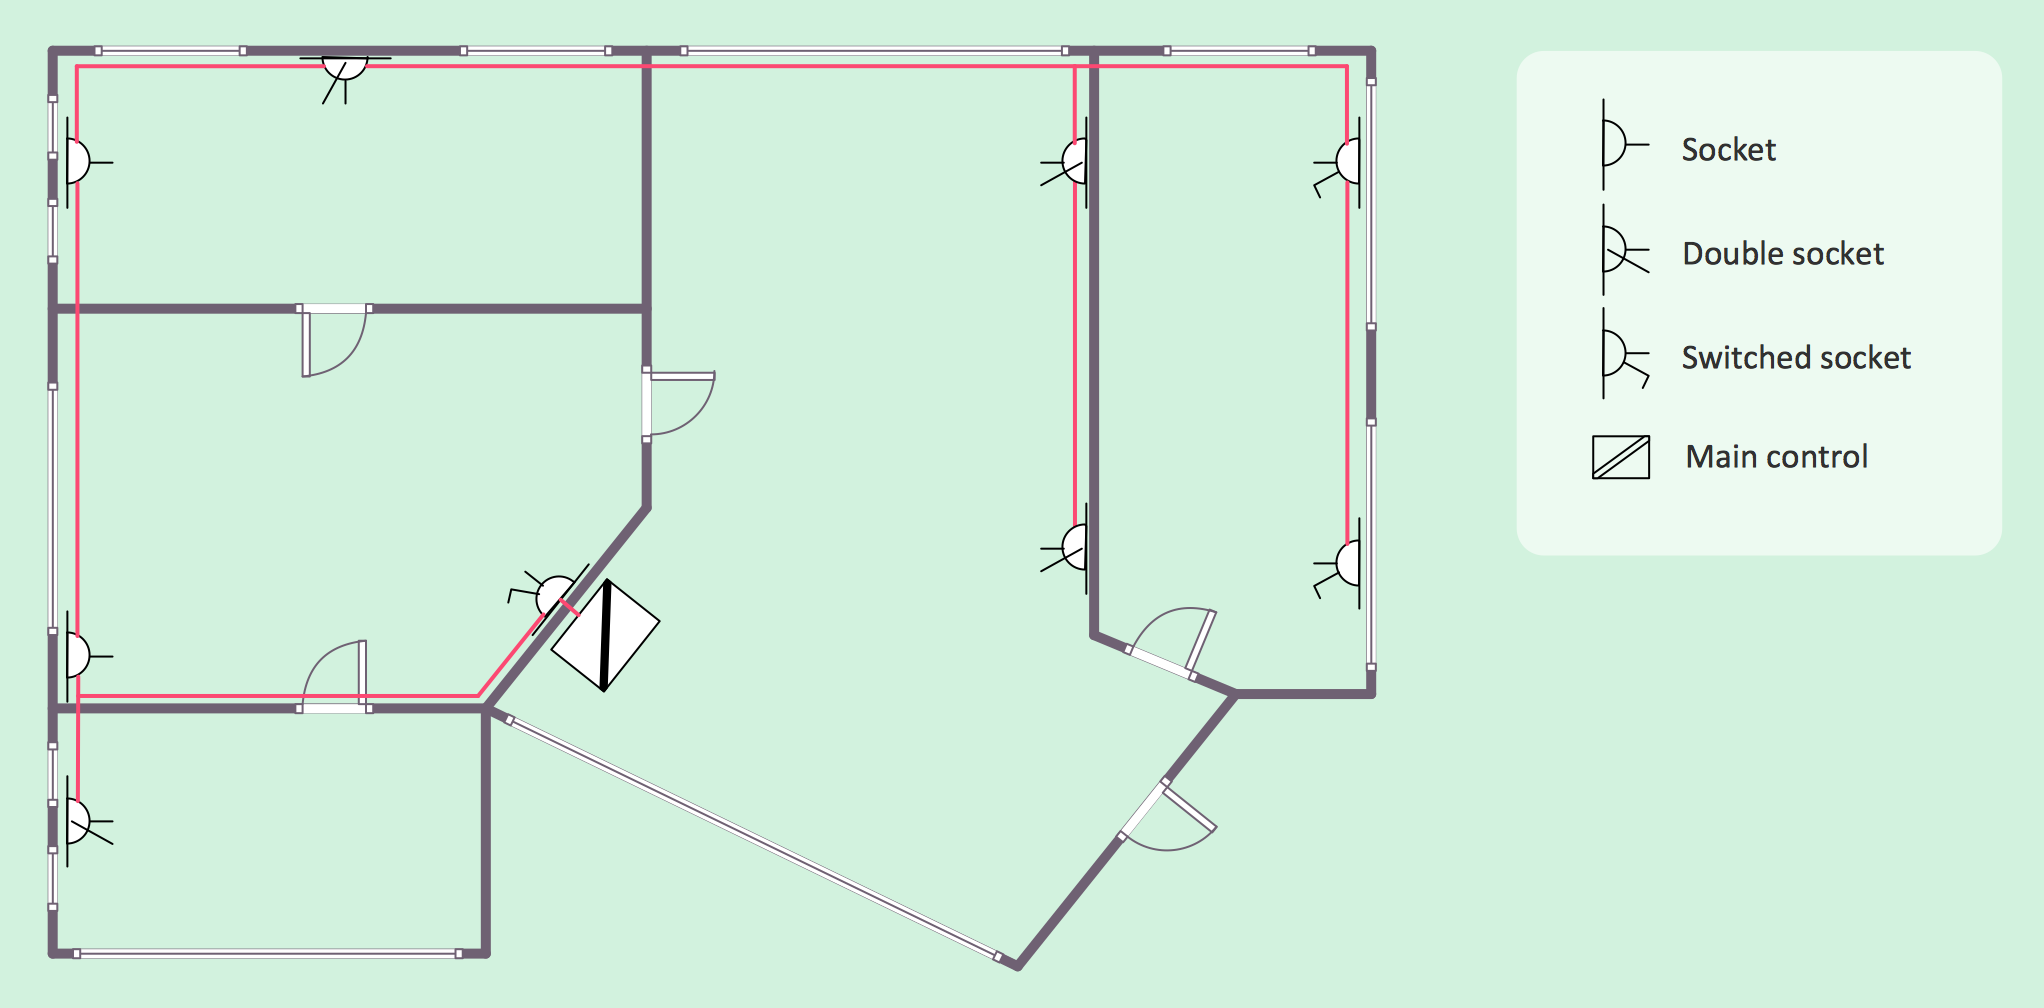 House electrical plan software electrical diagram for House electrical design